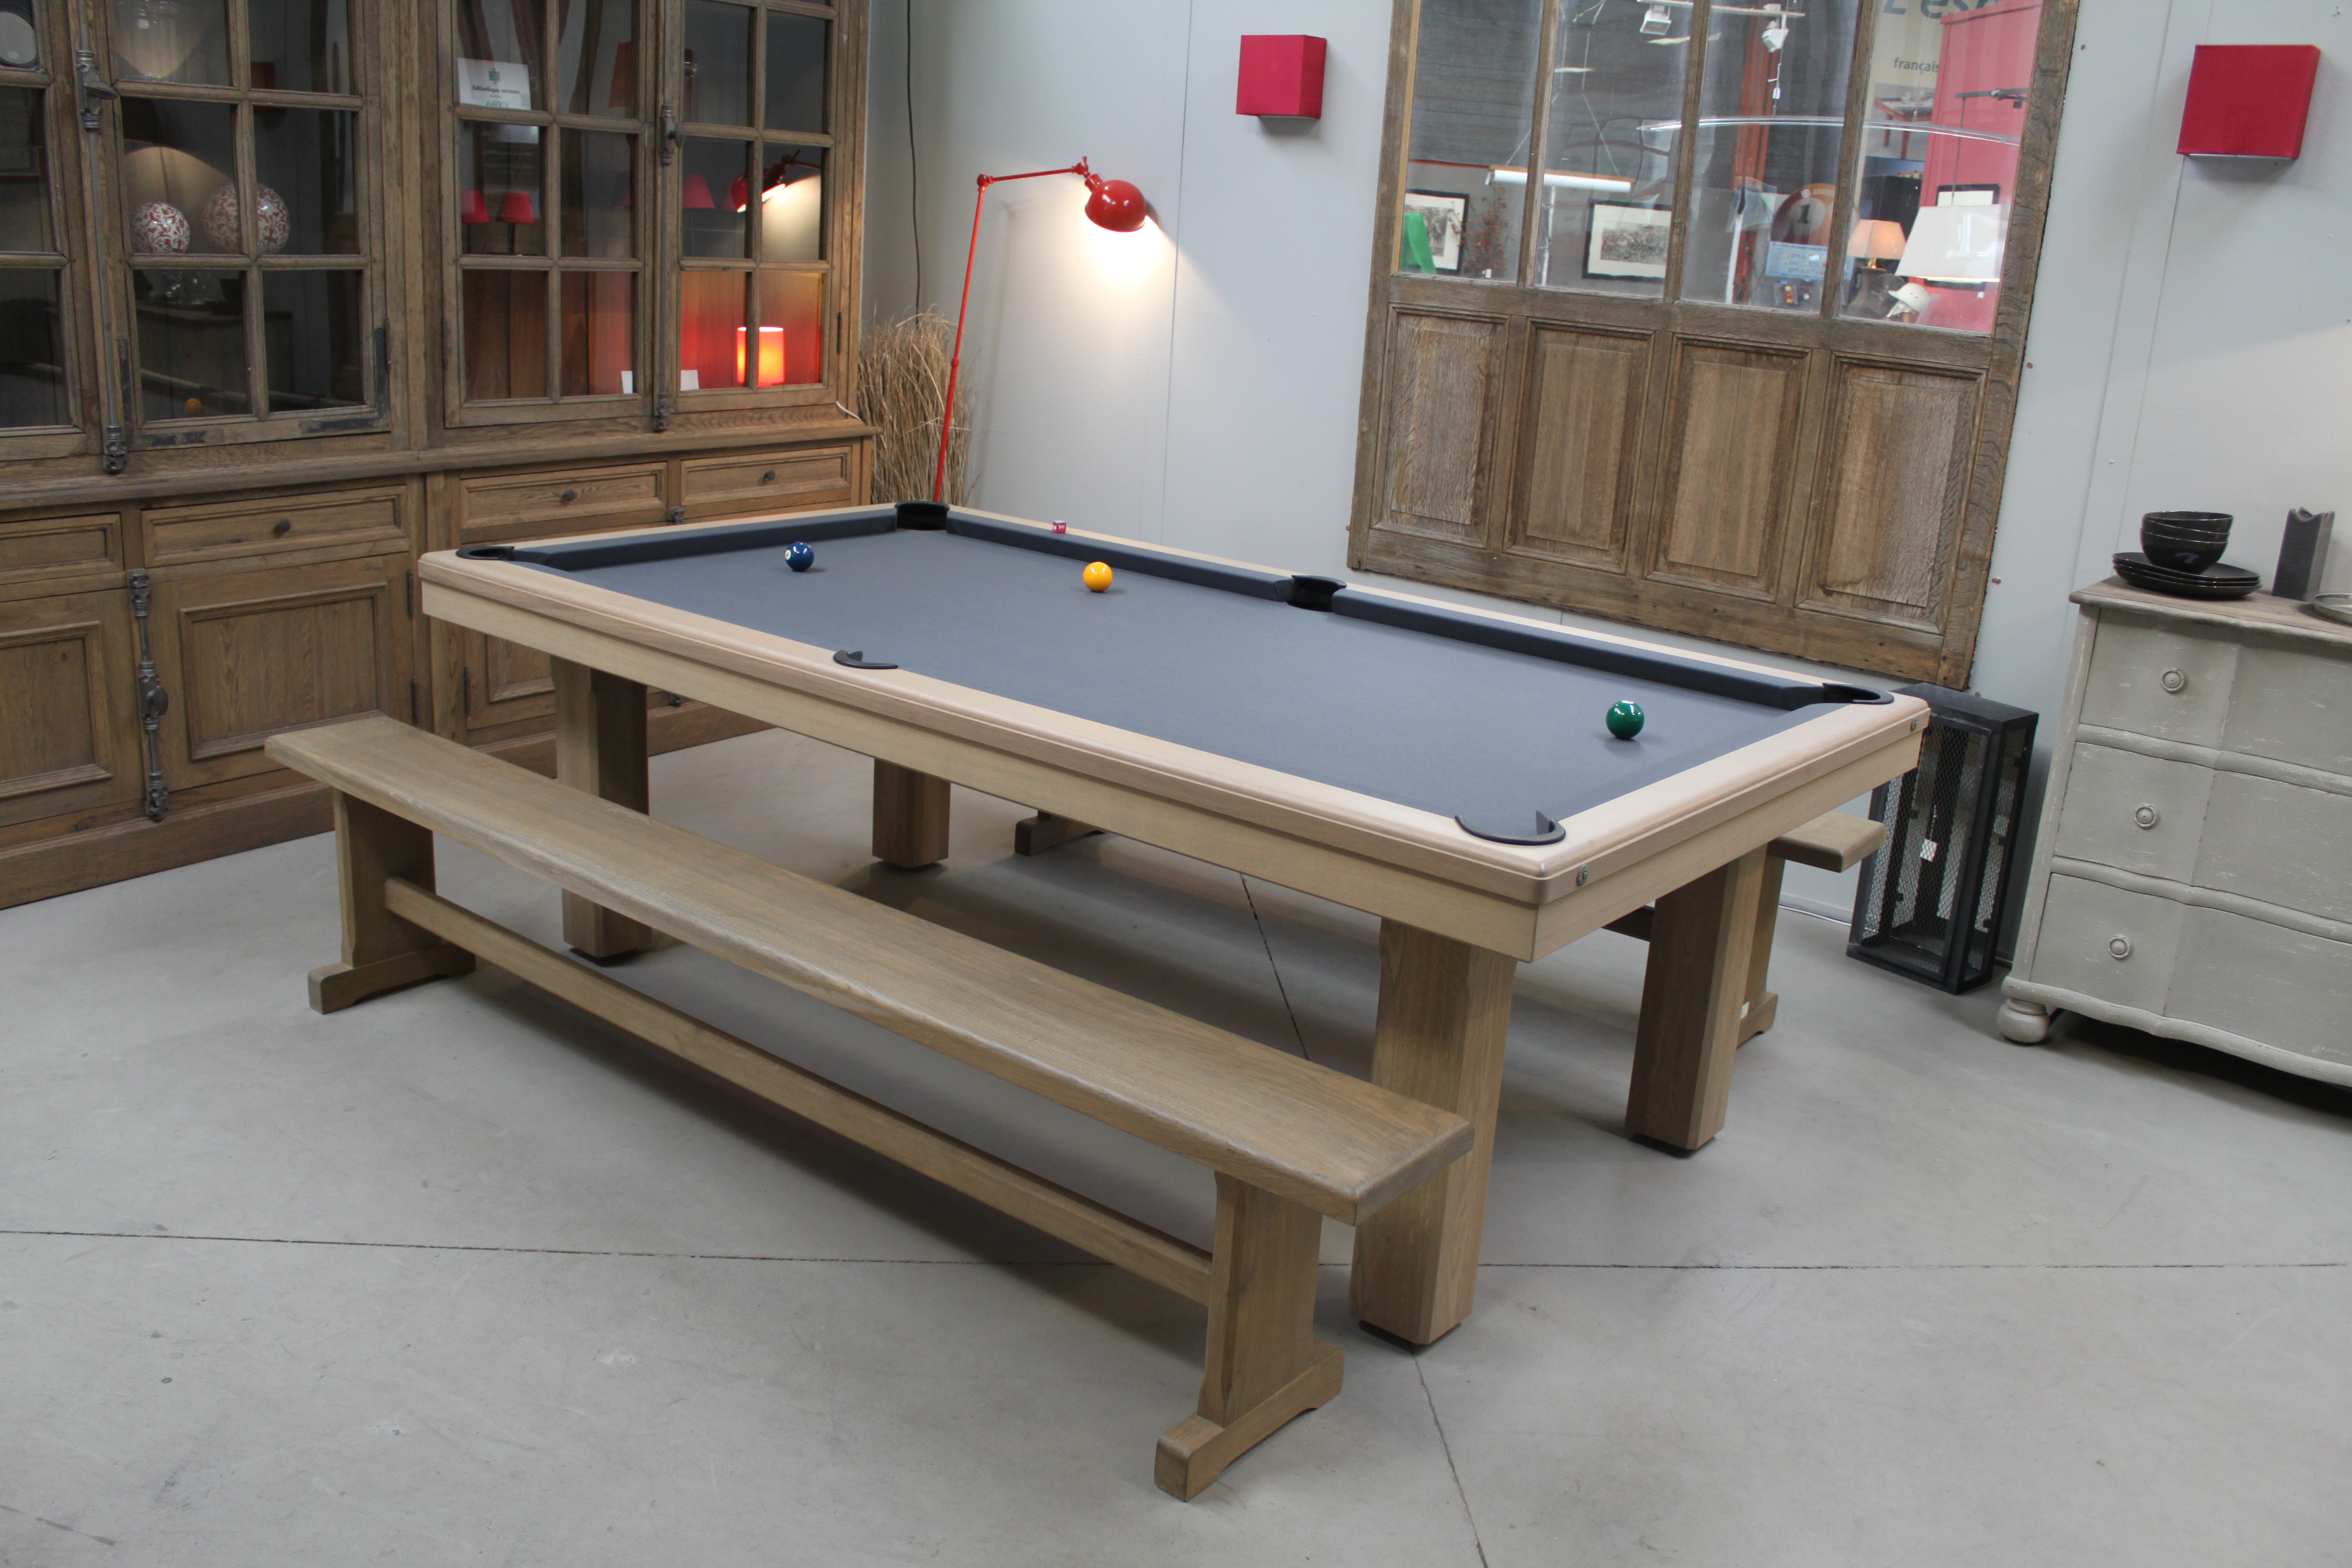 comment fabriquer une table de billard - maison design - sibfa